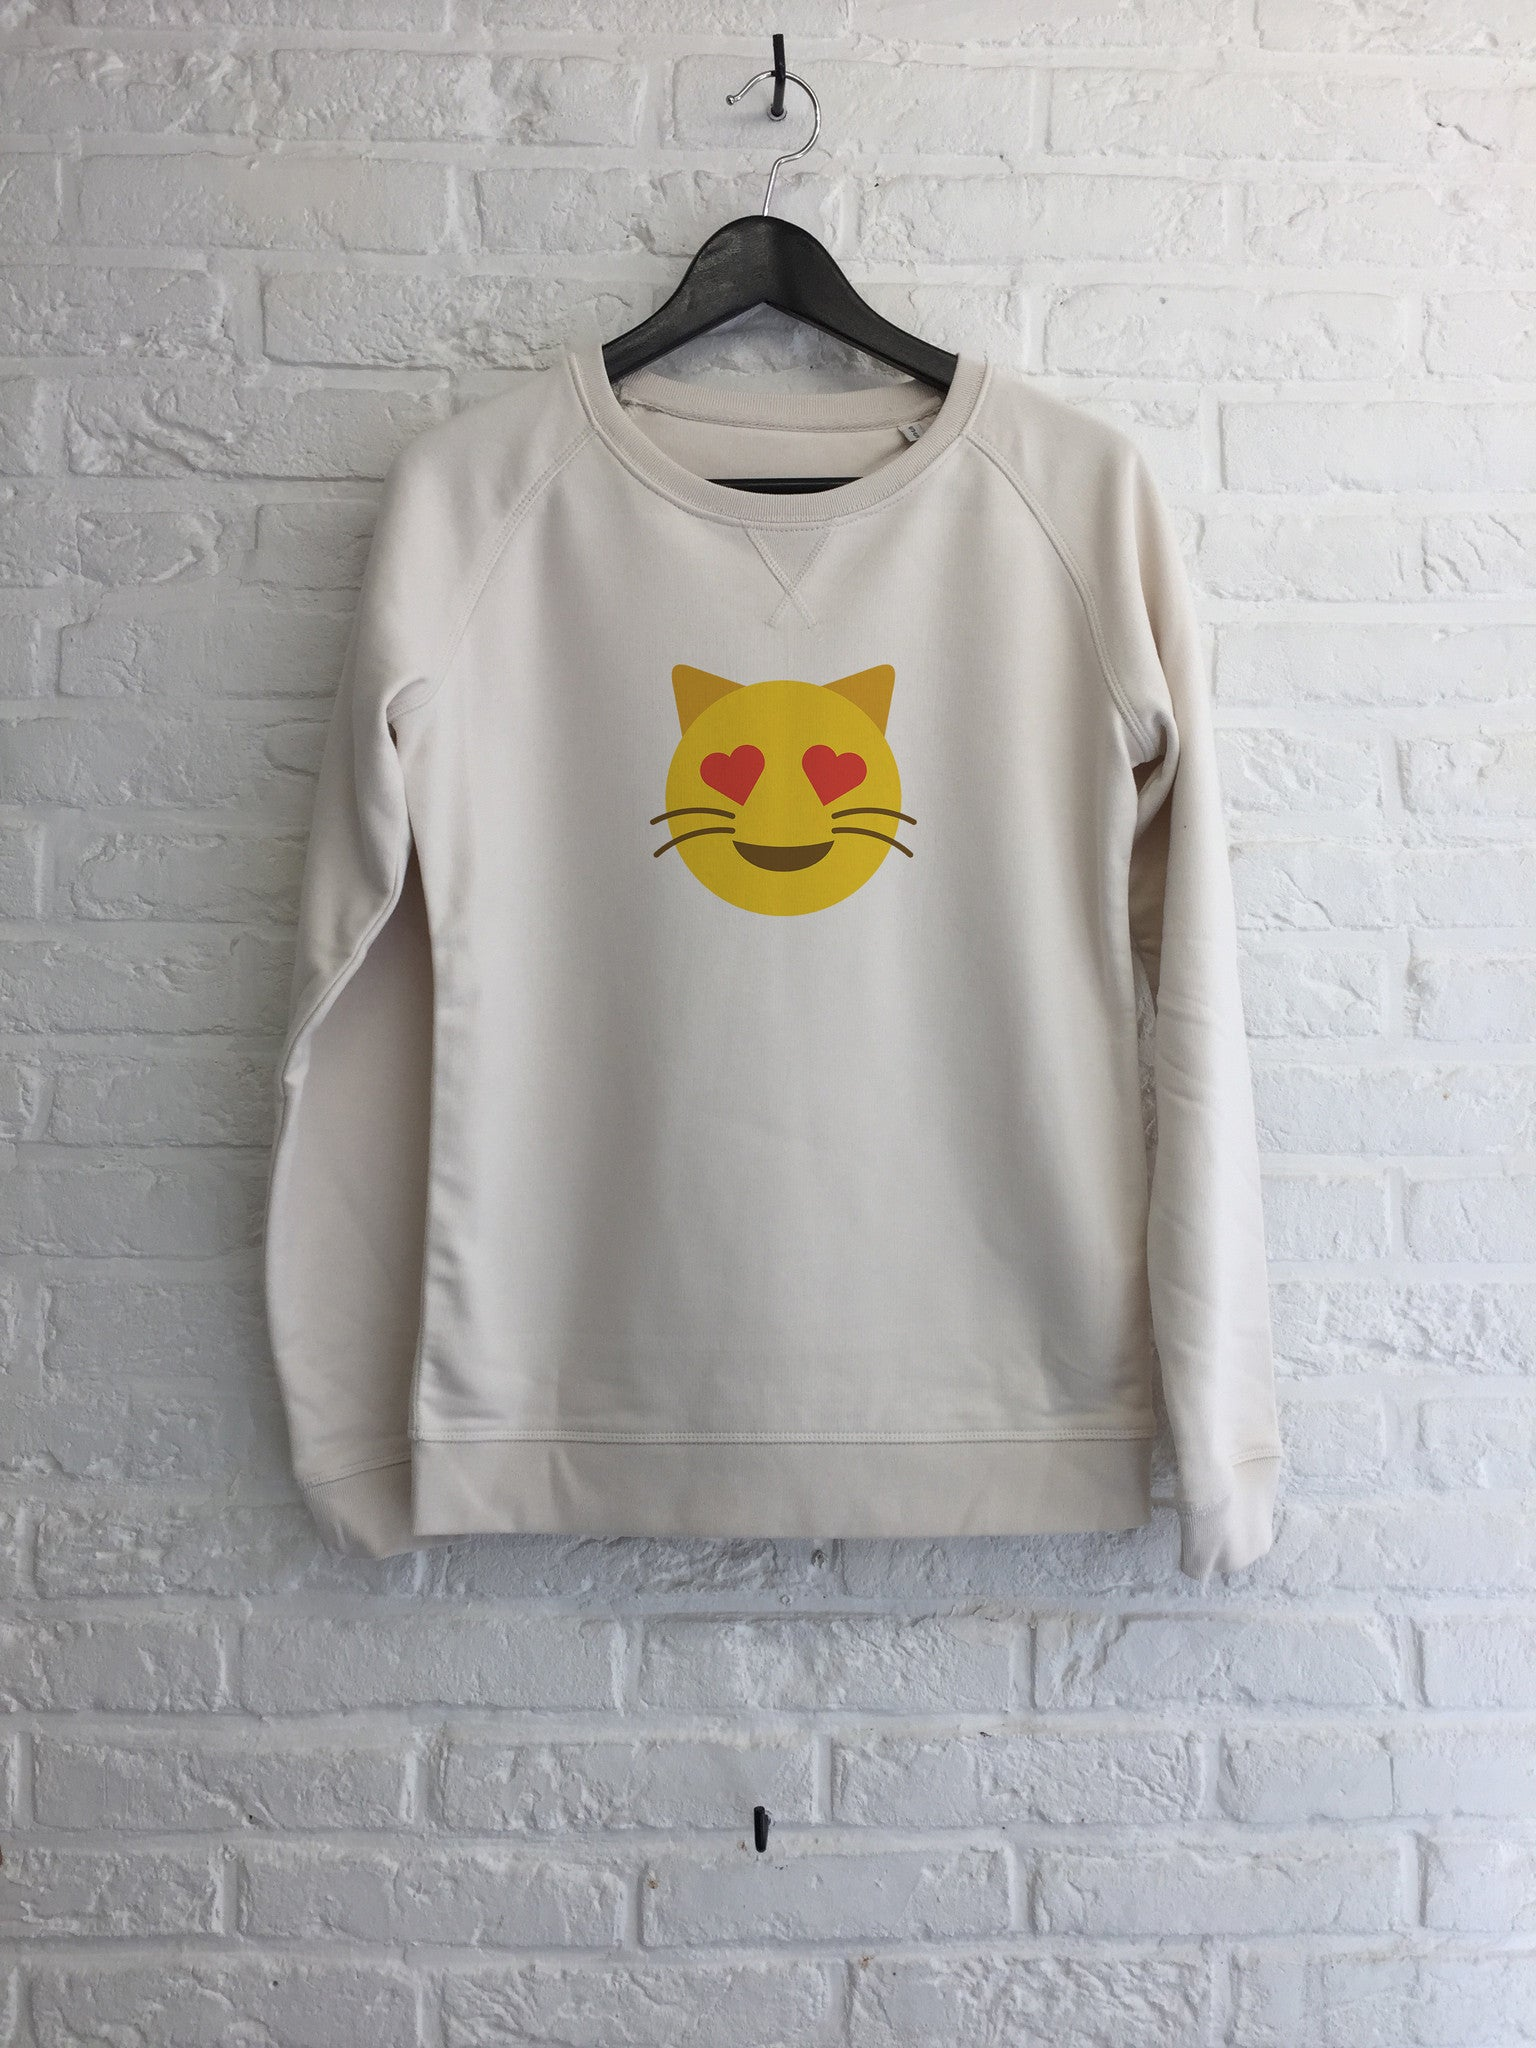 Chat coeur - Sweat - Femme-Sweat shirts-Atelier Amelot